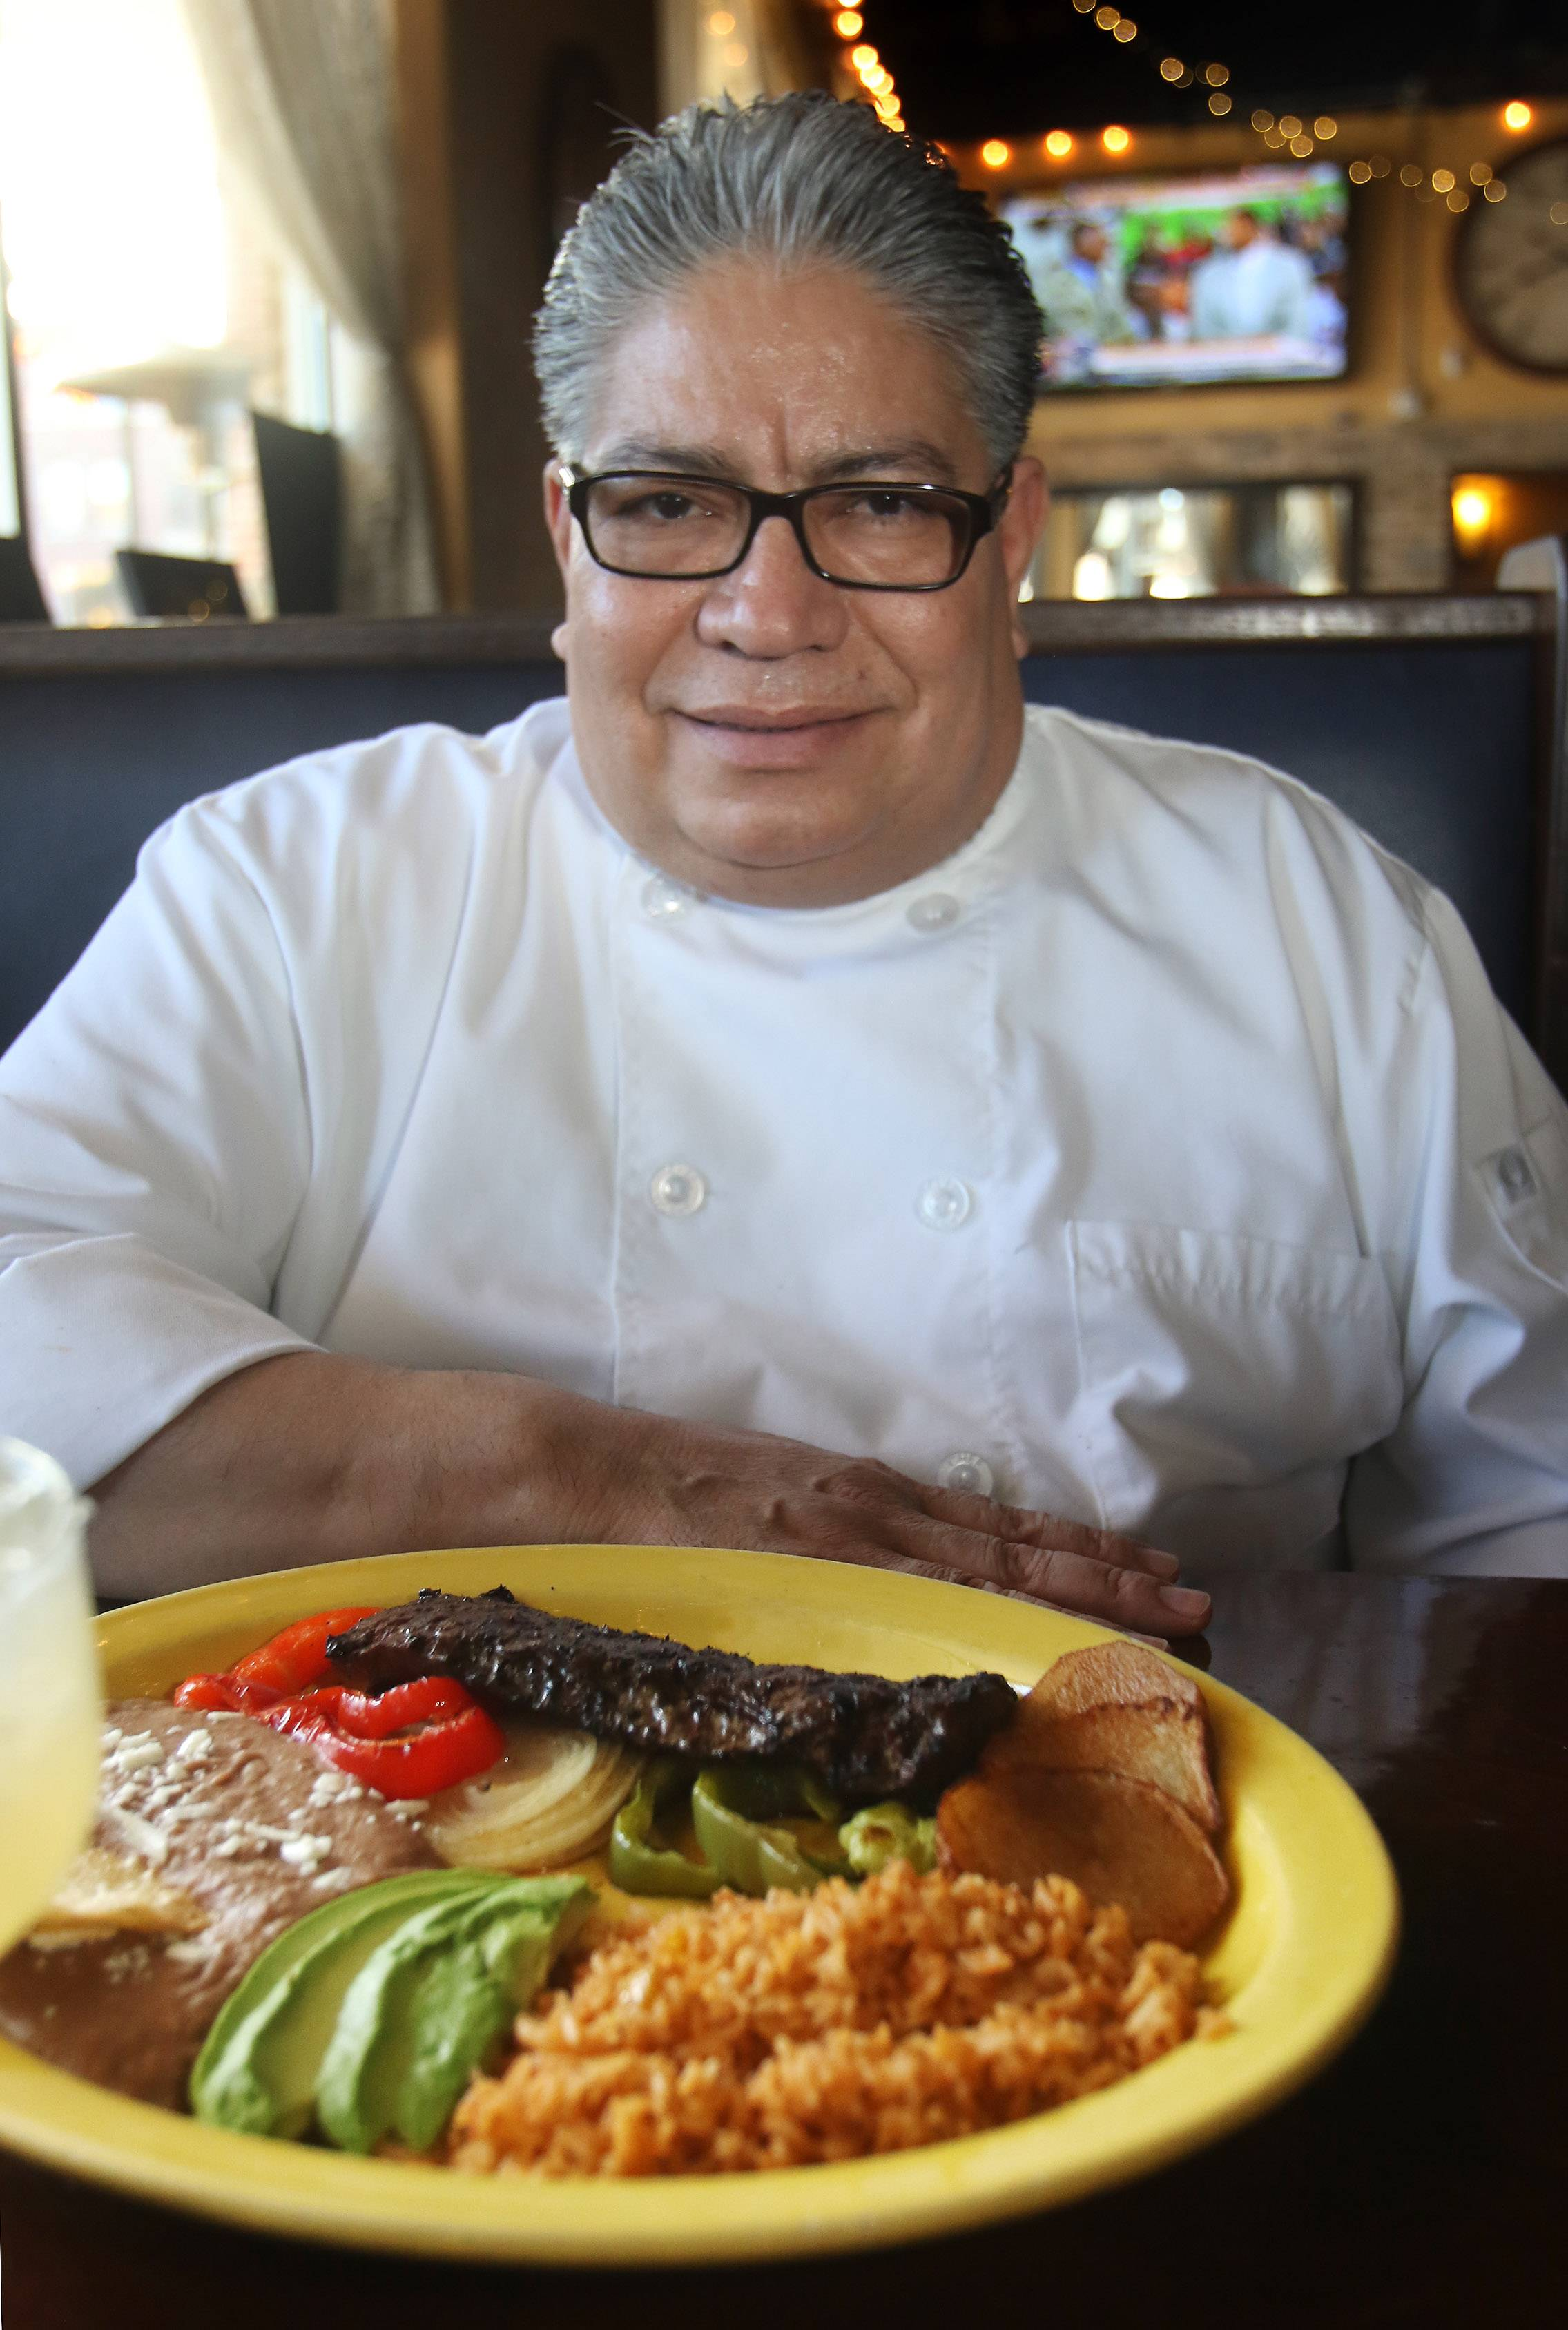 Casa Bonita chef Tino Almaraz shows off the carne asada.